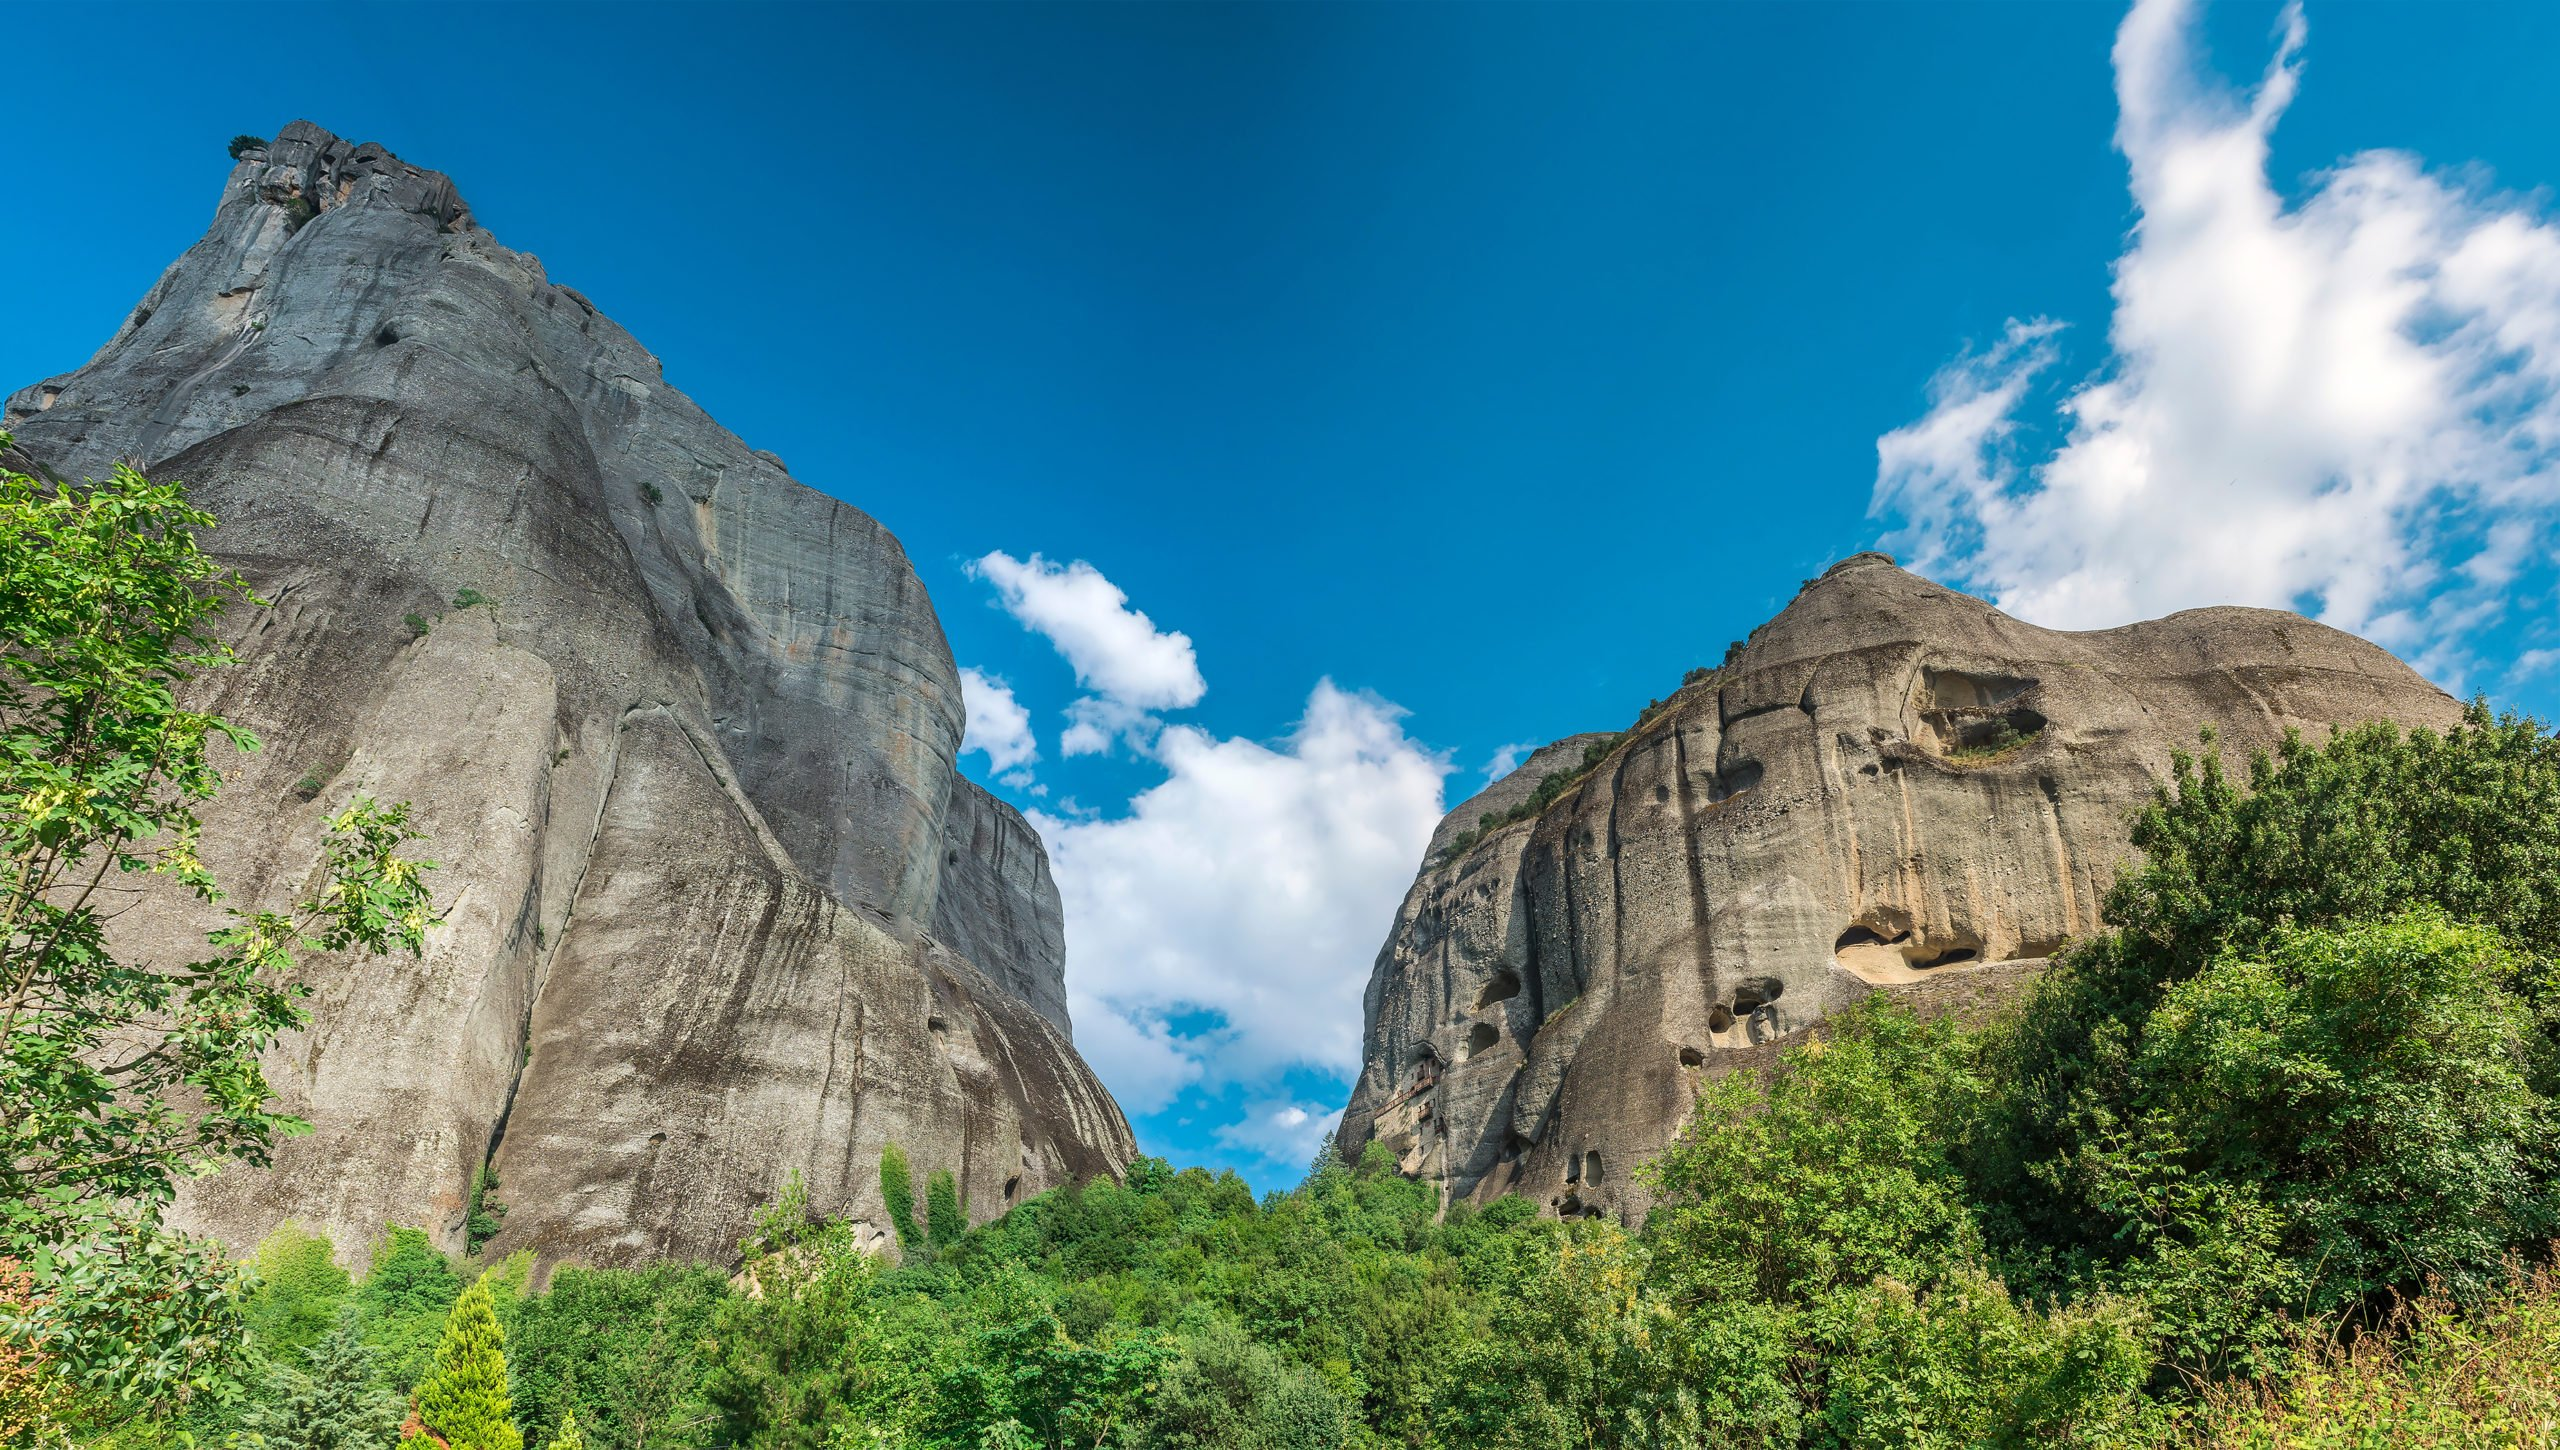 Discver The Birthplace Of The Hermit Monastery Community During The Meteora's Hermit Cave Half Day Hiking Tour